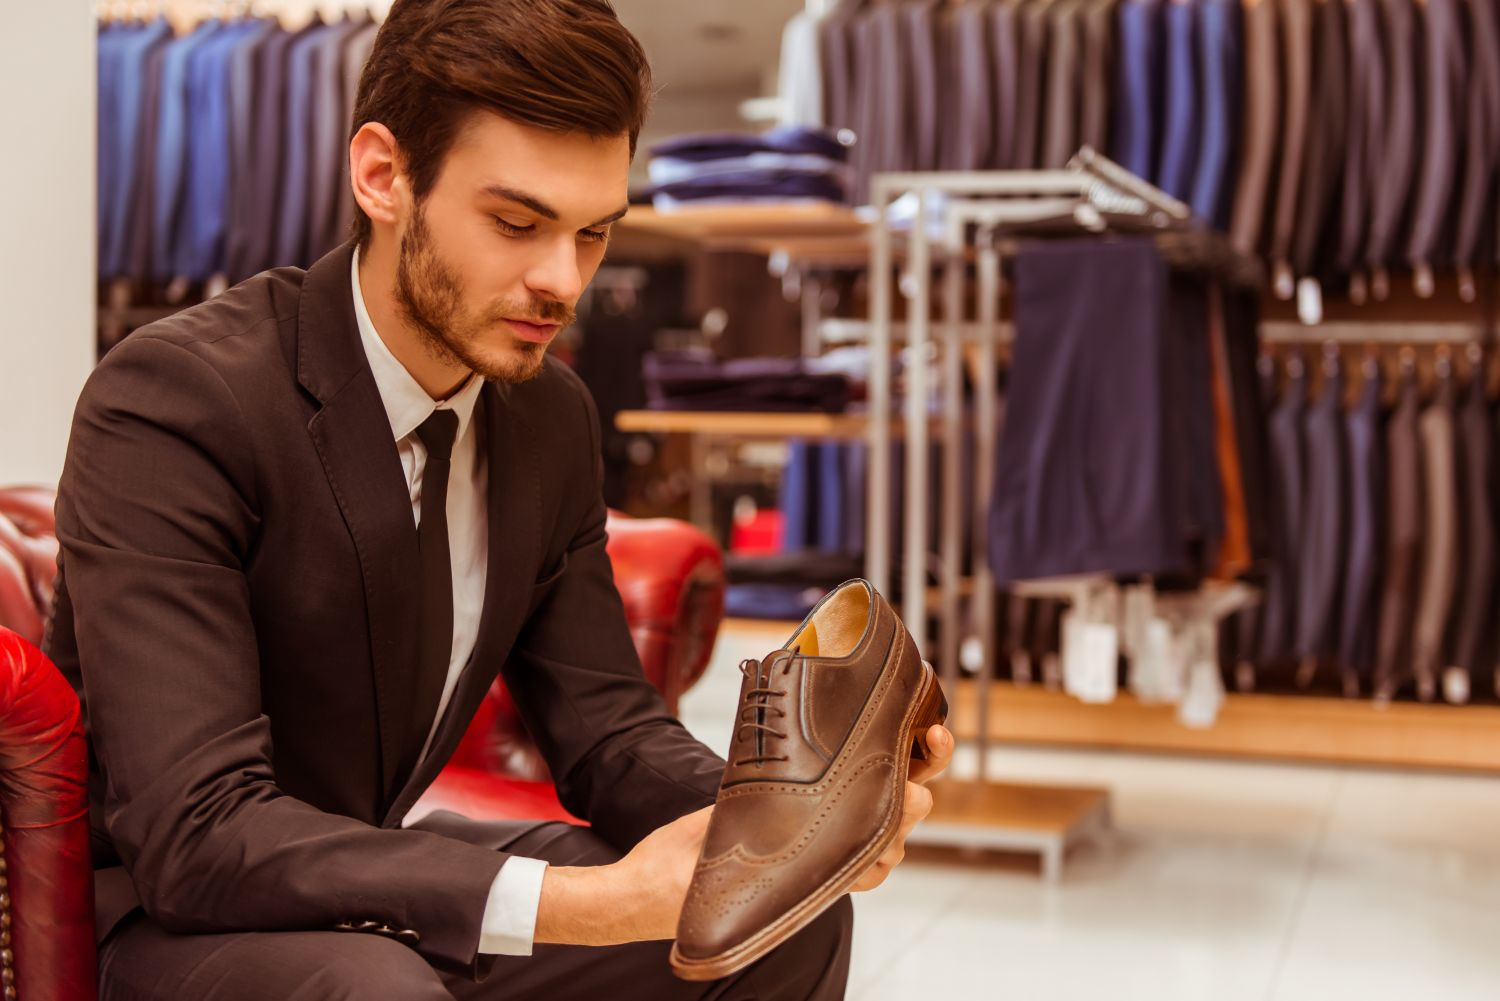 Men Shoe Shopping Tips and Tricks - Tallmenshoes.com